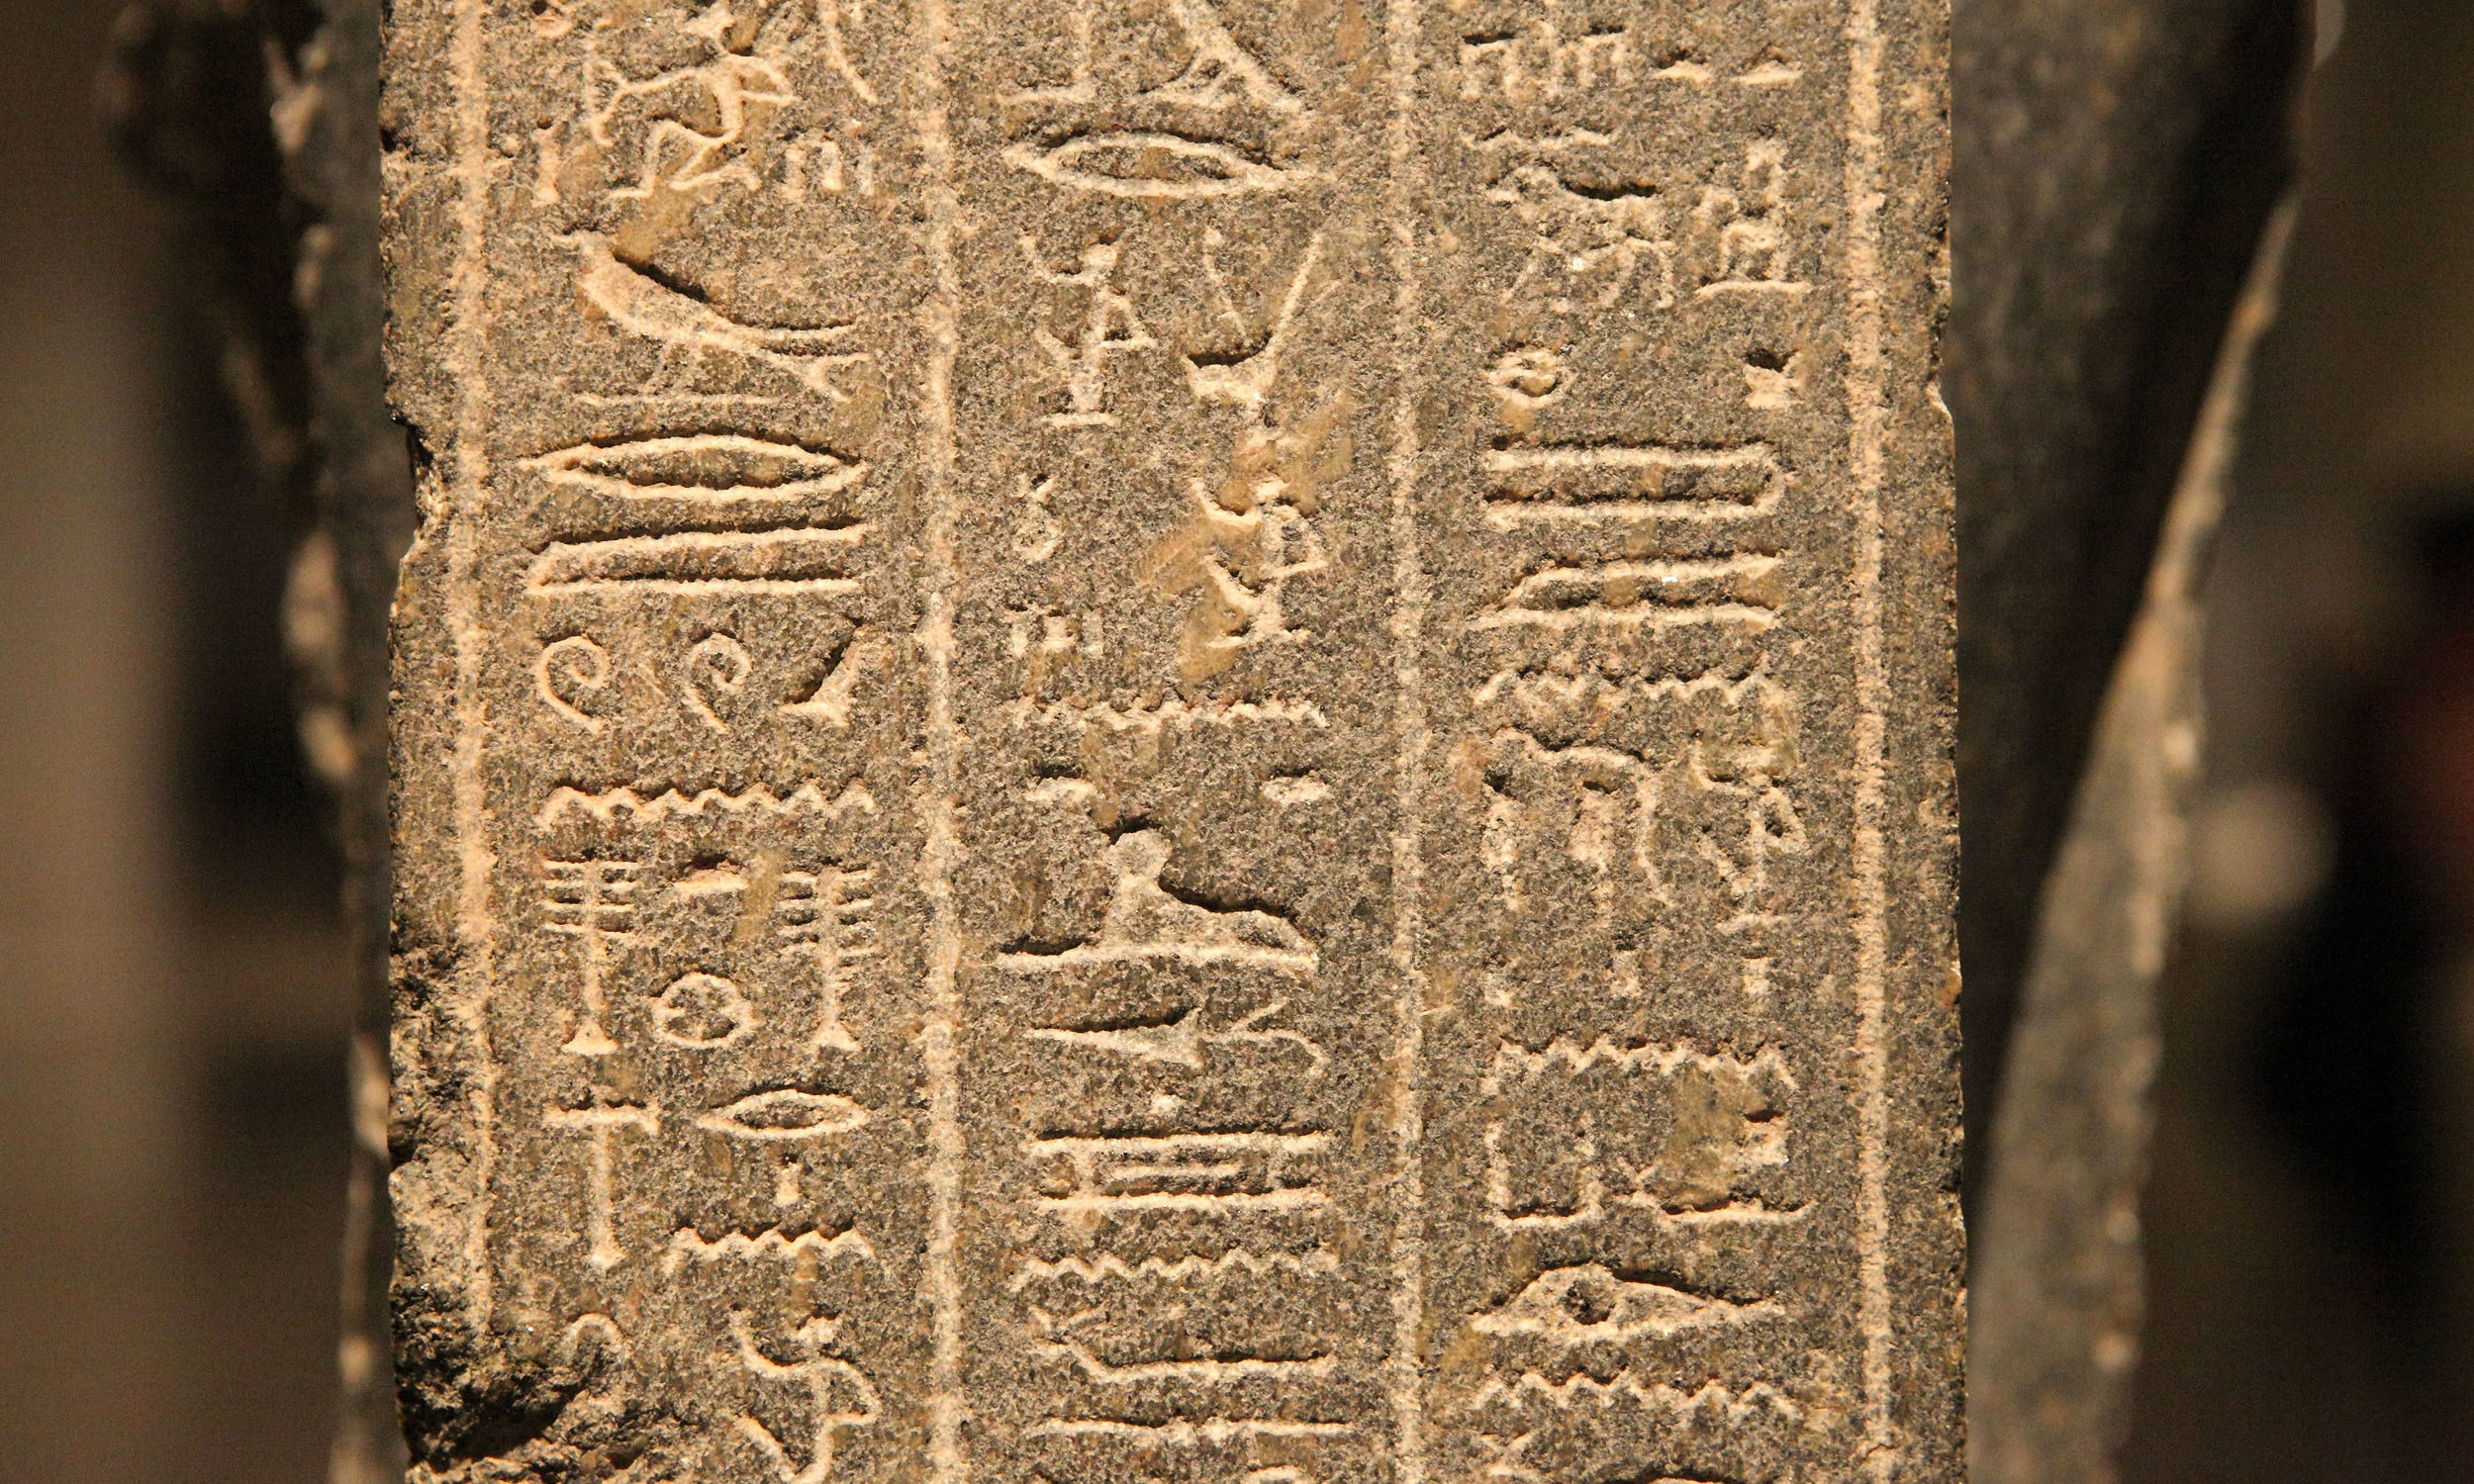 Hieroglyphs: Emojis of the Ancient World? Not Quite -